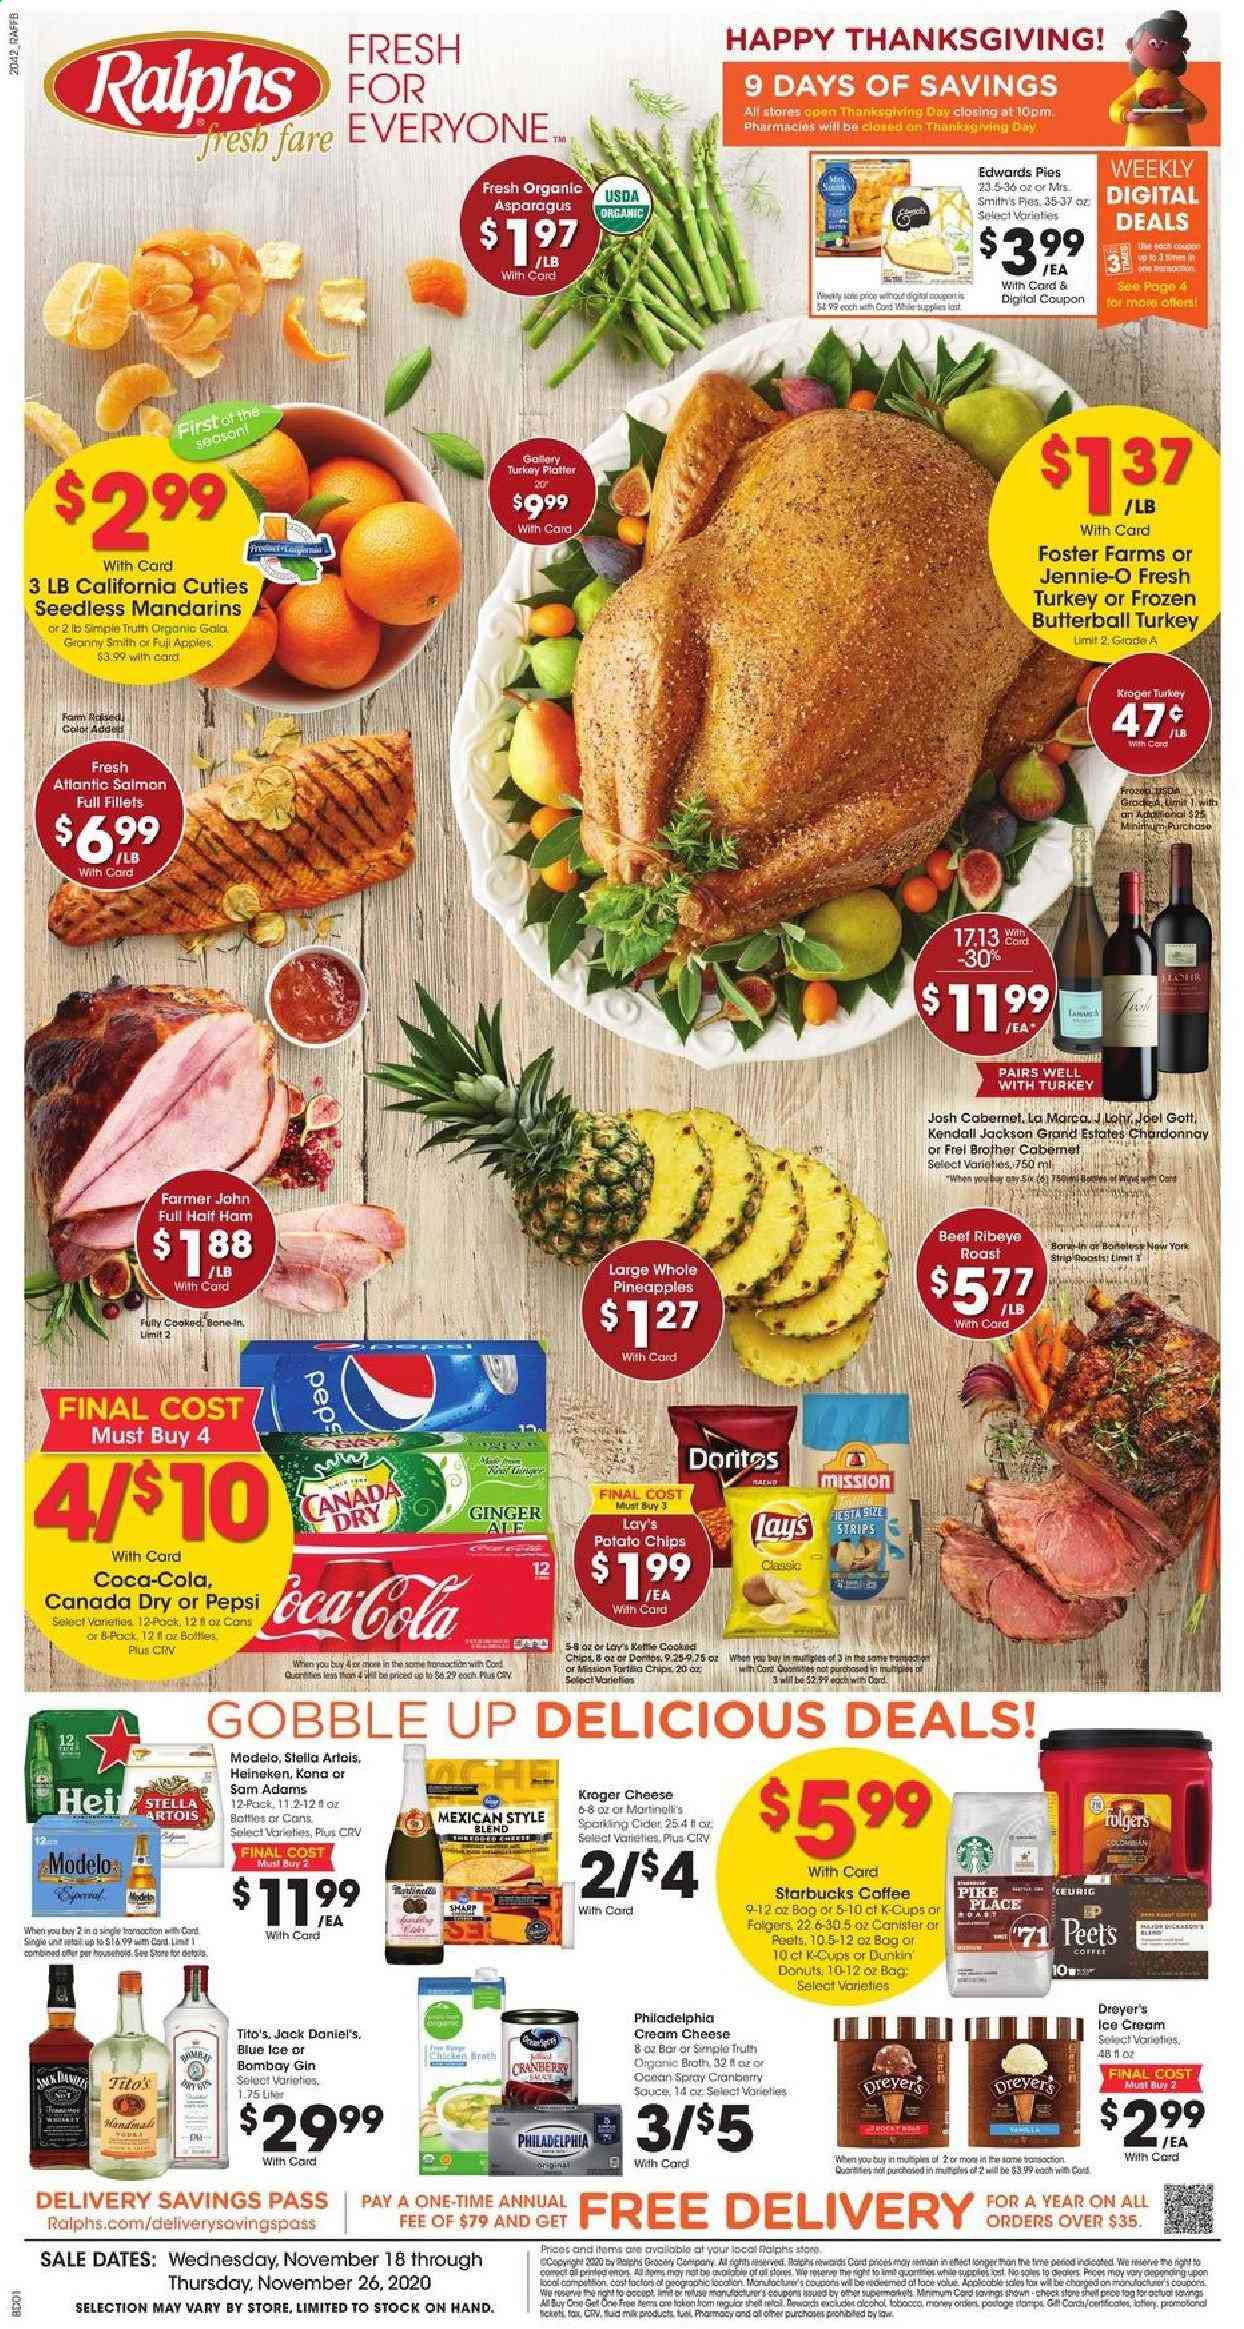 Ralphs Flyer - 11.18.2020 - 11.26.2020 - Sales products - apples, asparagus, beef meat, Brother, Butterball, Canada Dry, coca-cola, coffee, cream cheese, Doritos, frozen, gin, ginger, ginger ale, Sharp, sparkling cider, starbucks, Stella Artois, turkey, half ham, ham, Jack Daniel's, philadelphia, pike, pineapple, potato chips, chardonnay, chicken, Pepsi, chips, fuji apple, cheese, Lee, Lay's, canister, platter, heineken, Folgers, Apple, donut, pineapples. Page 1.